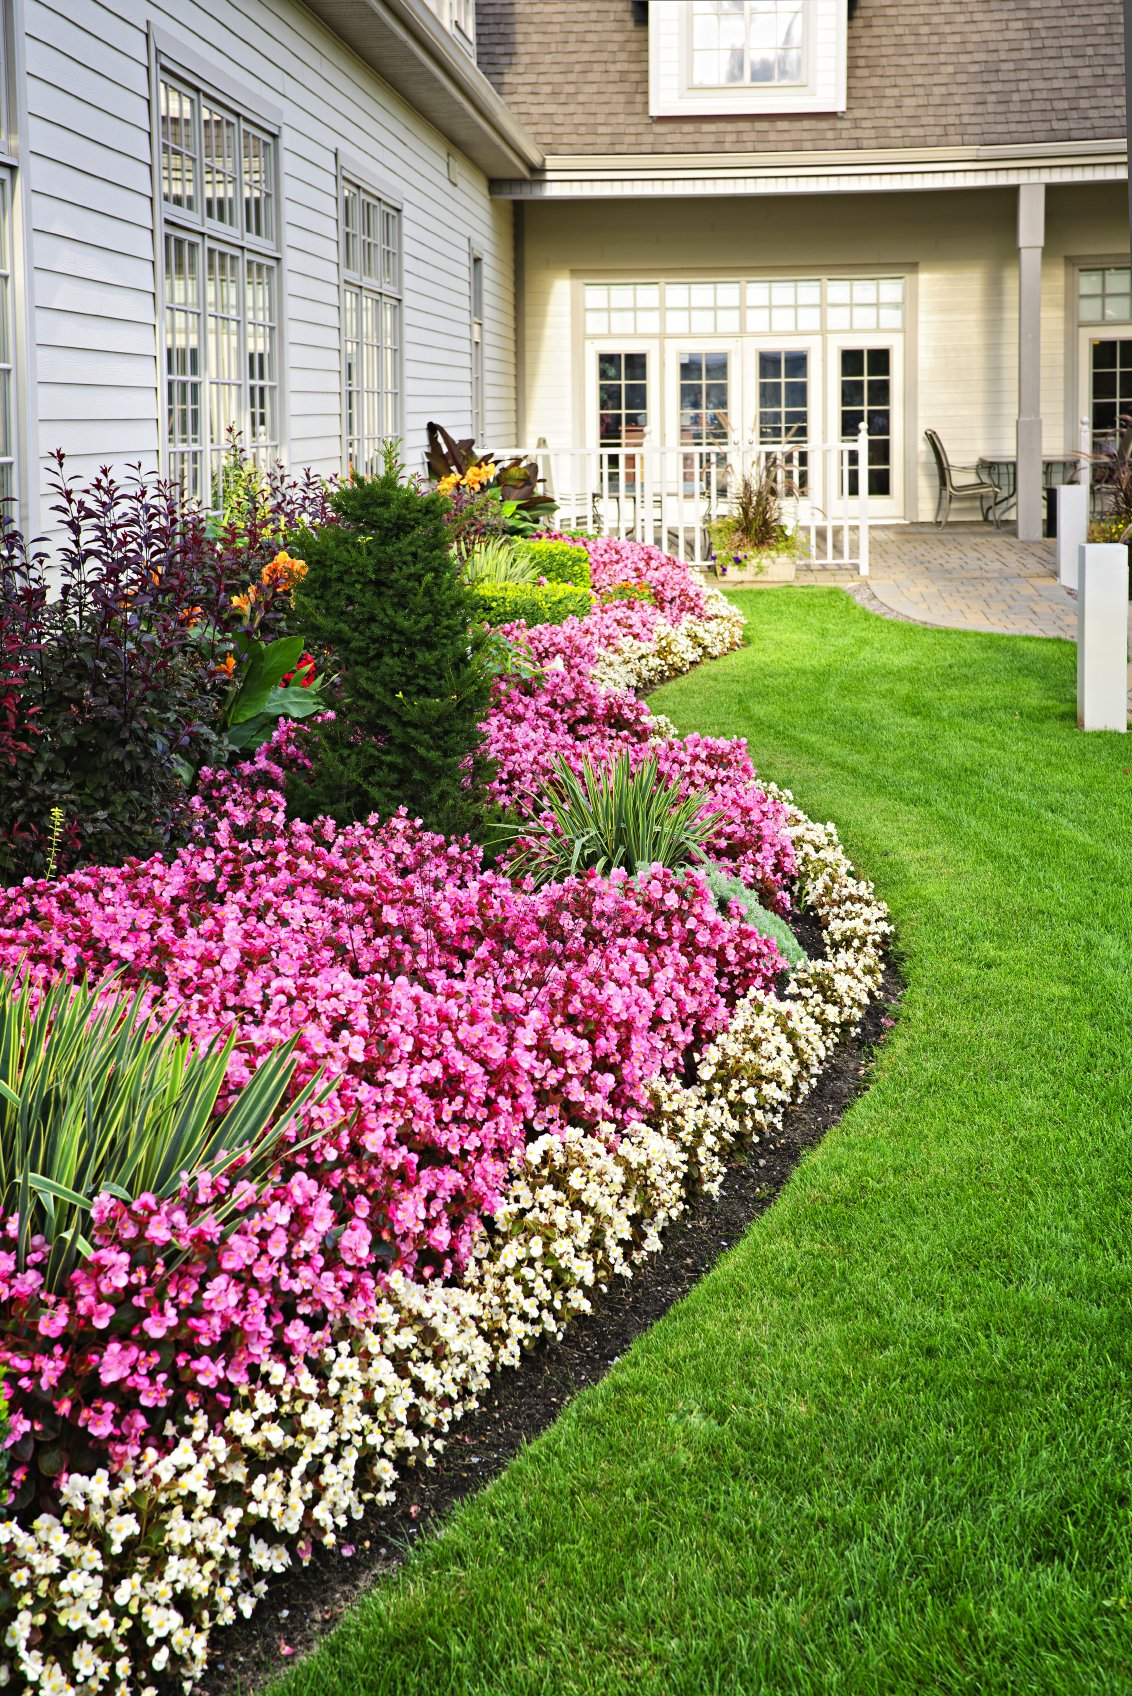 10 Inspirational Residential Landscaping Ideas To Make ... on Landscape Front Yard Ideas  id=79533